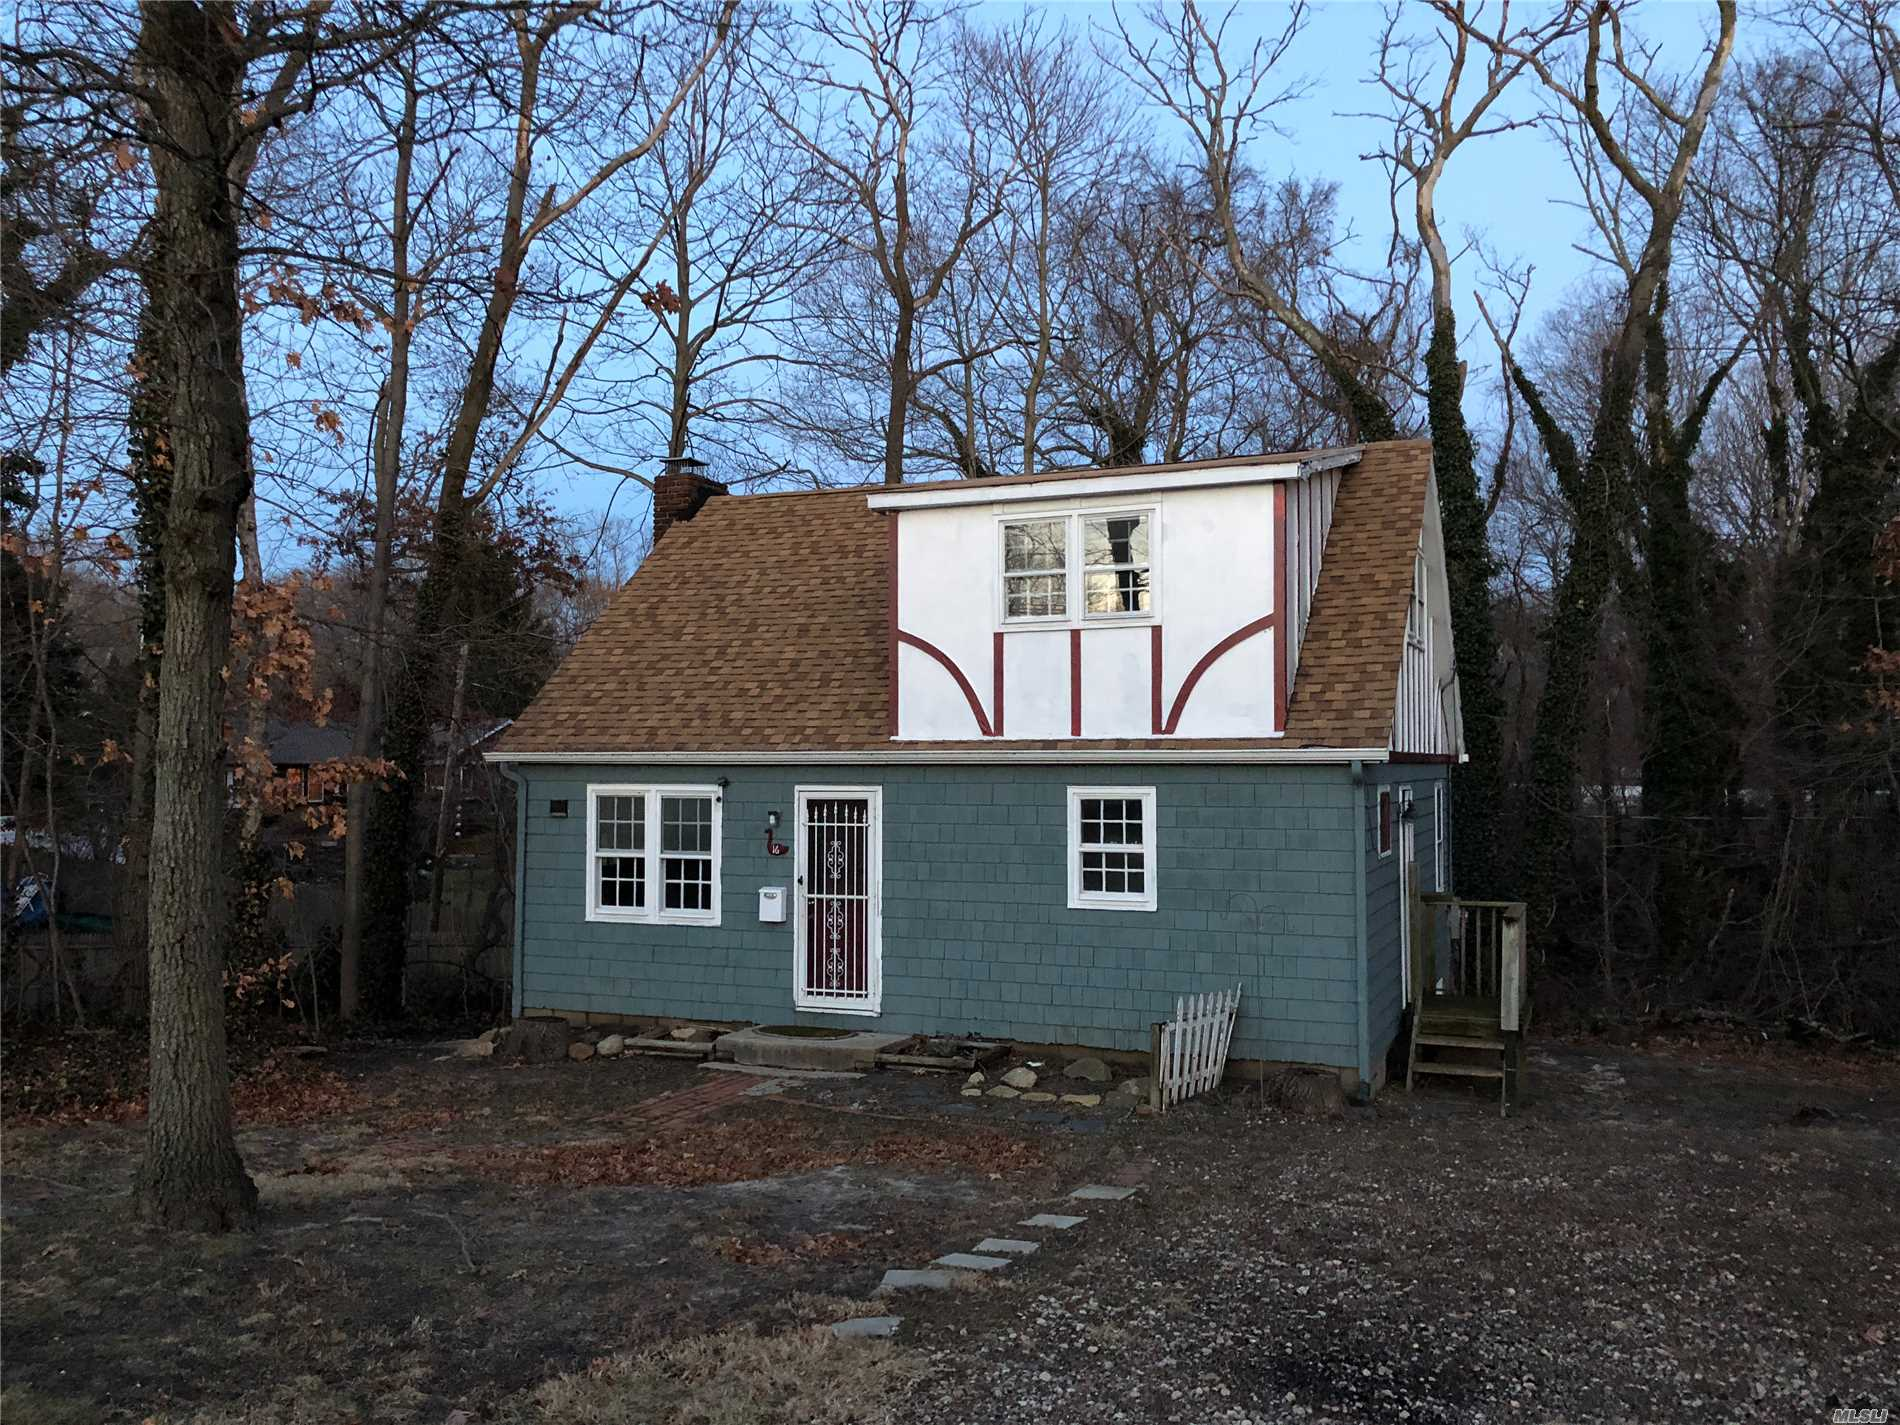 Legal2 Family . 2 Separate Cottages On One Lot. Right Of Way For Electric In Rear Of Property. Built By A Fire Island Craftsman With V Groove Cedar. Vaulted Ceilings, Heatalator Fireplace, Hwfloors. Bring Your Imagination. Young Gas Heating System And Hwh, And 150 Electric. 2 Separate Services.Shy 30000 Sq Ft Lot.